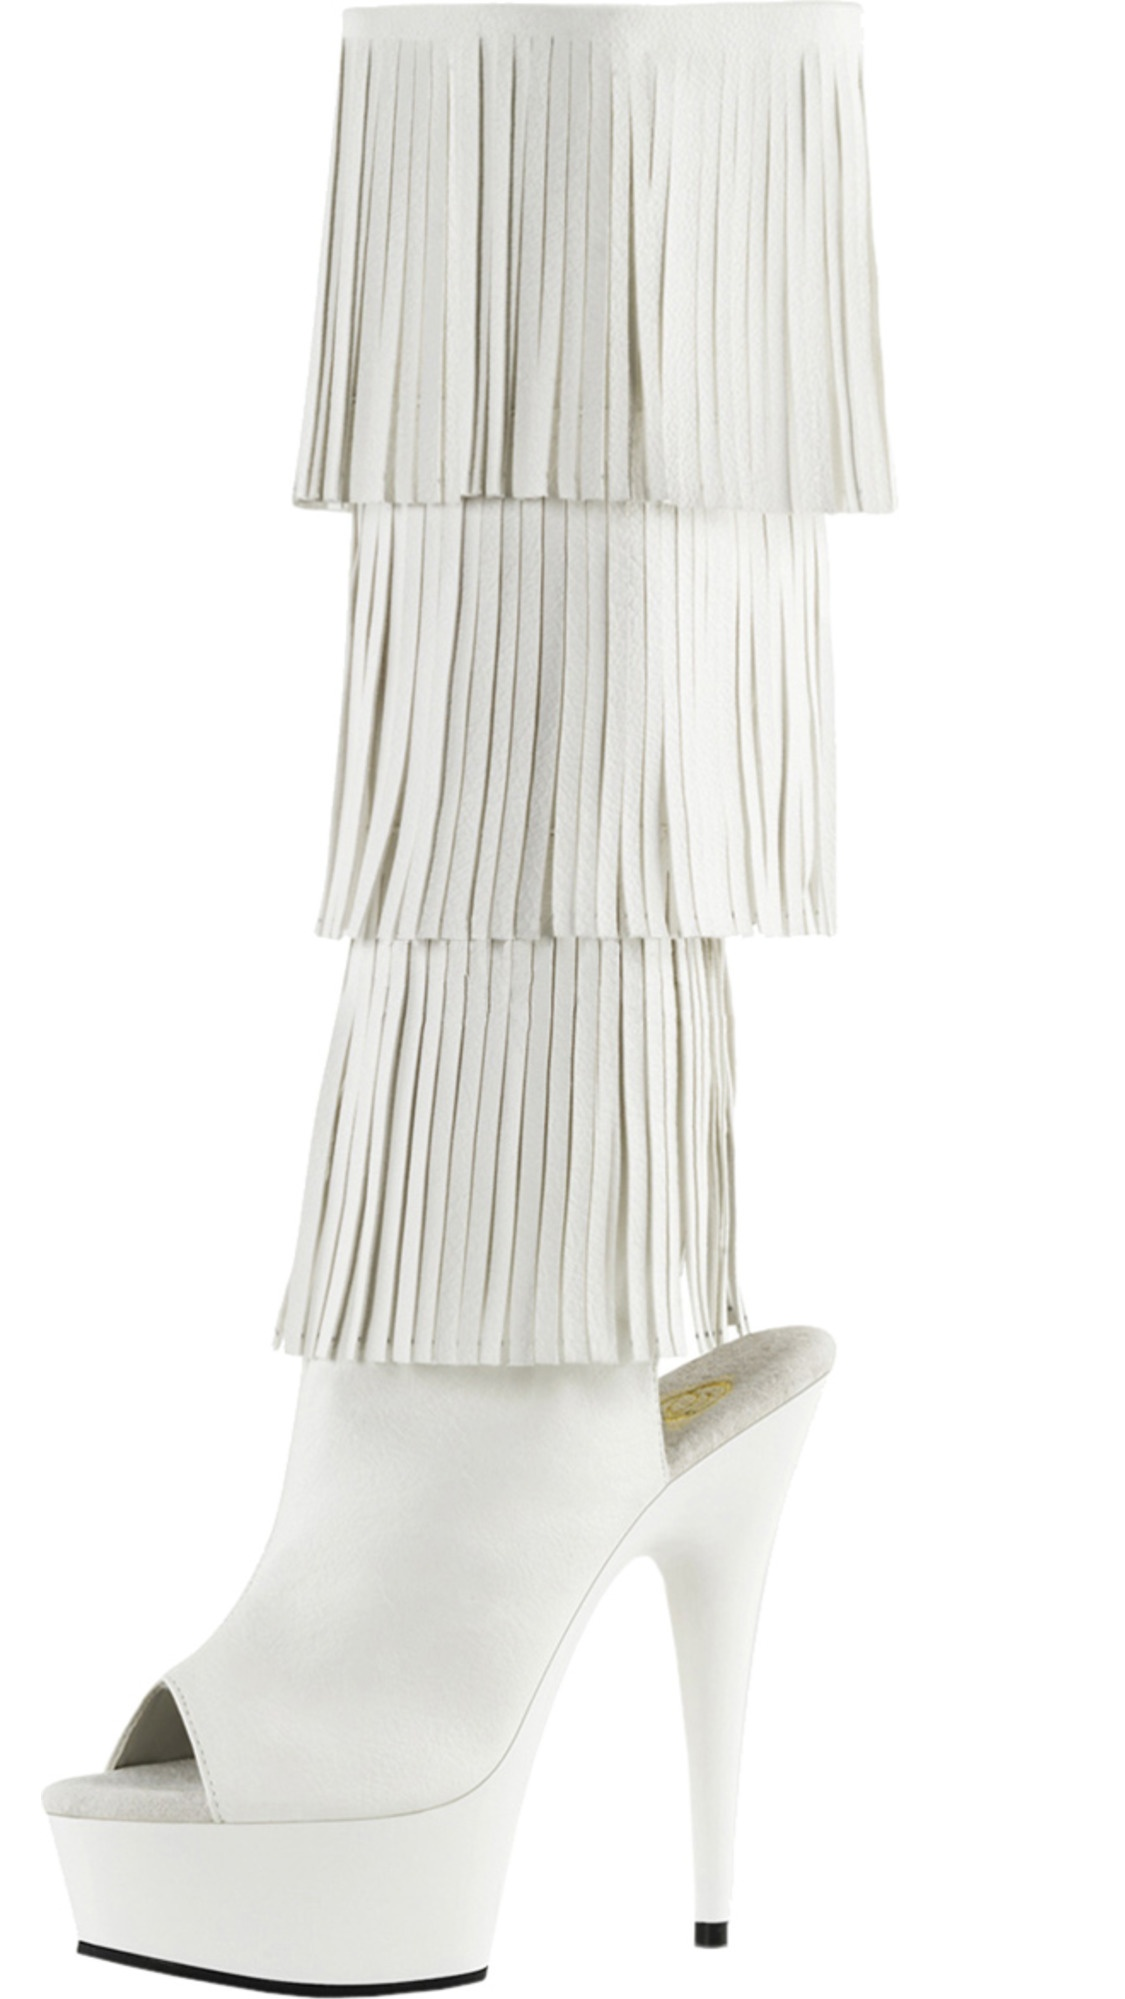 Womens White Knee High Boots Open Toe Shoes Fringe Boots Platforms 6 Inch Heels